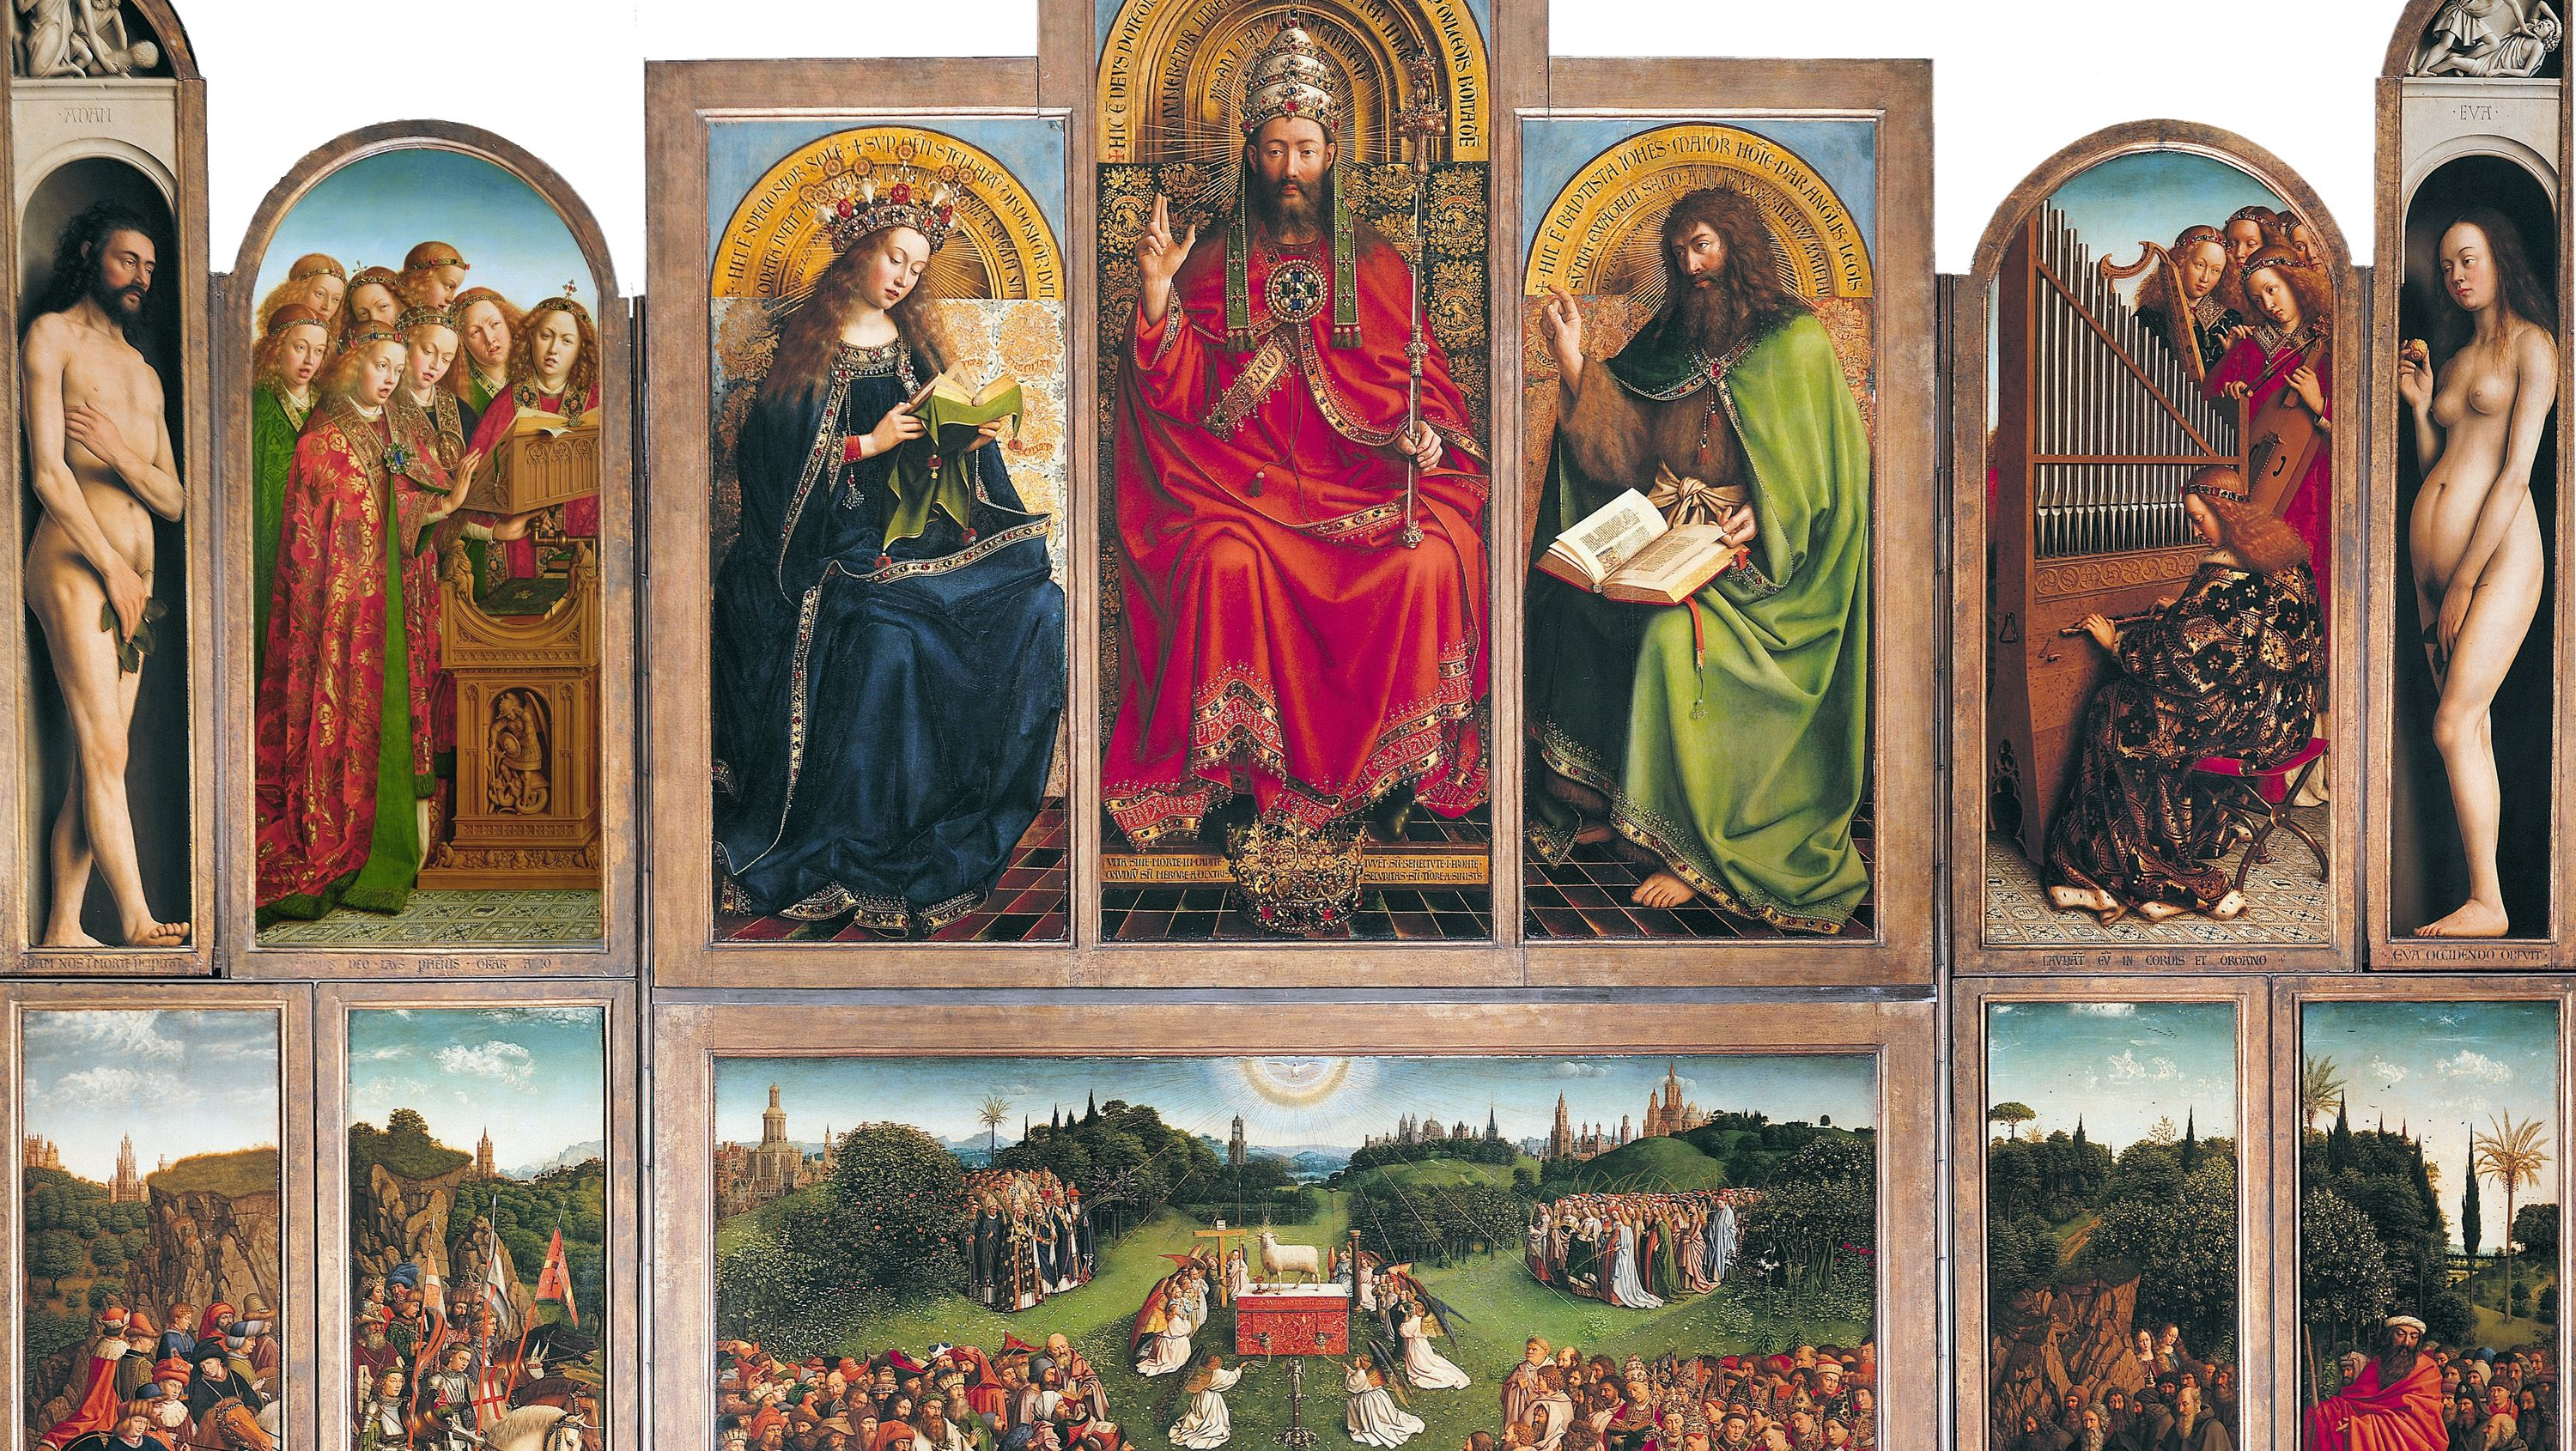 The Enduring Mystery of the Ghent Altarpiece, the World's Most-Stolen Painting